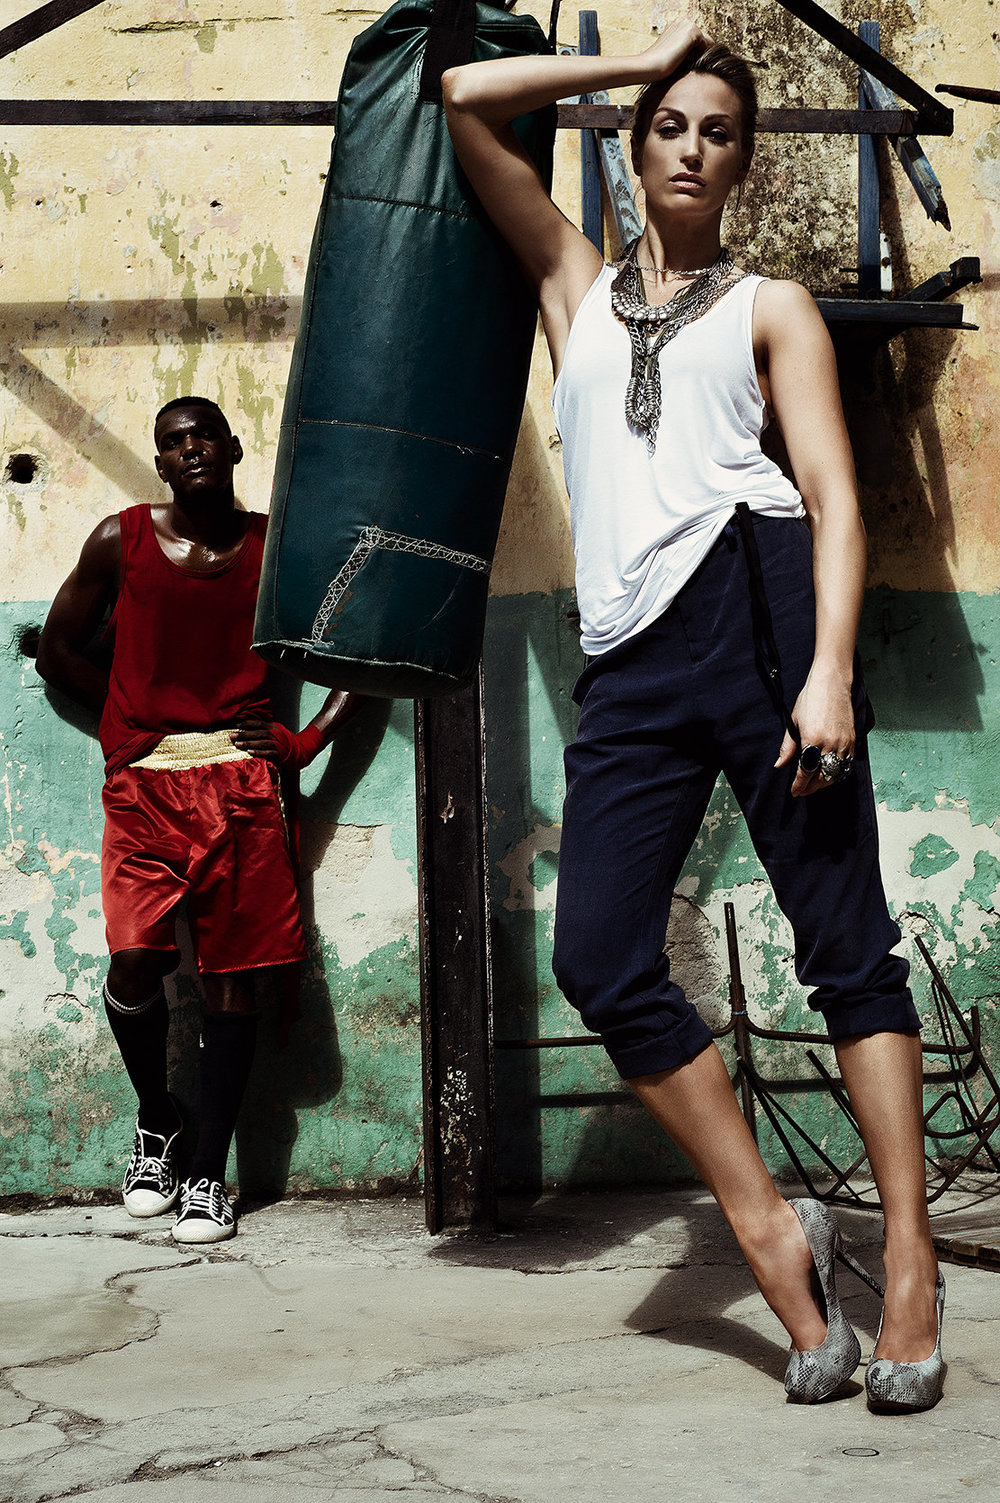 woman-in-boxing-gym-in-cuba.jpg